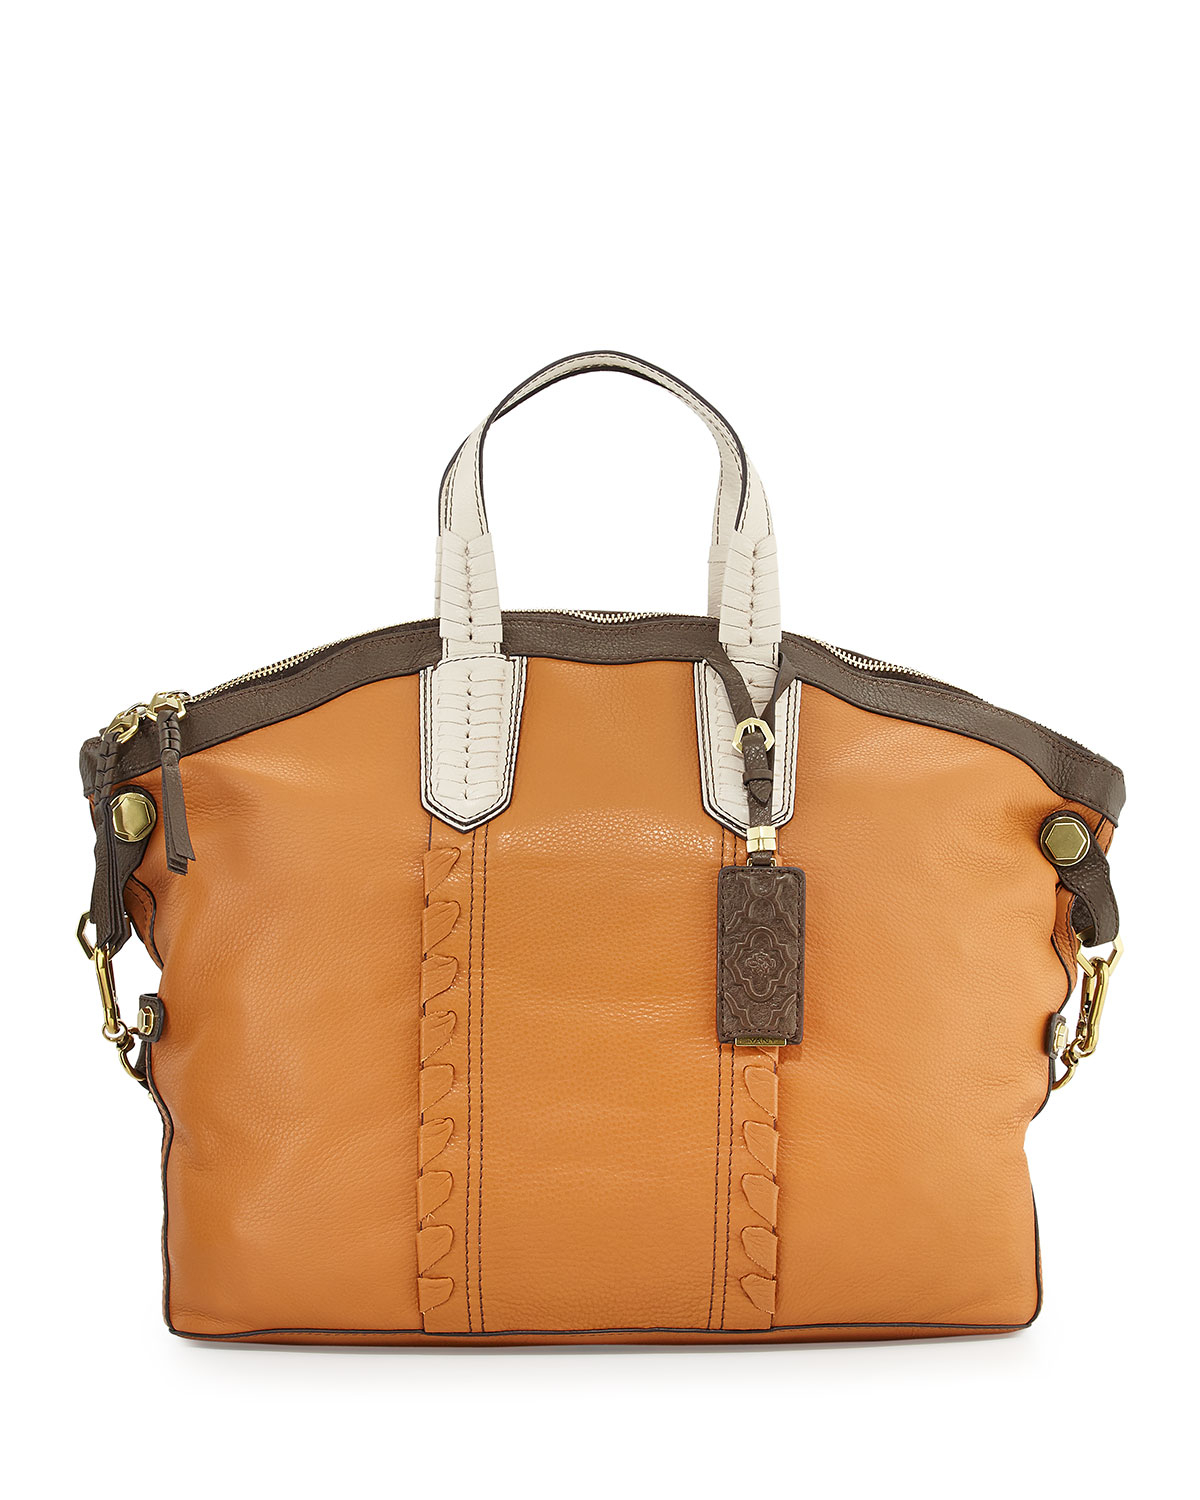 4075eb207610 Oryany Bessie Colorblock Leather Hobo Bag in Natural